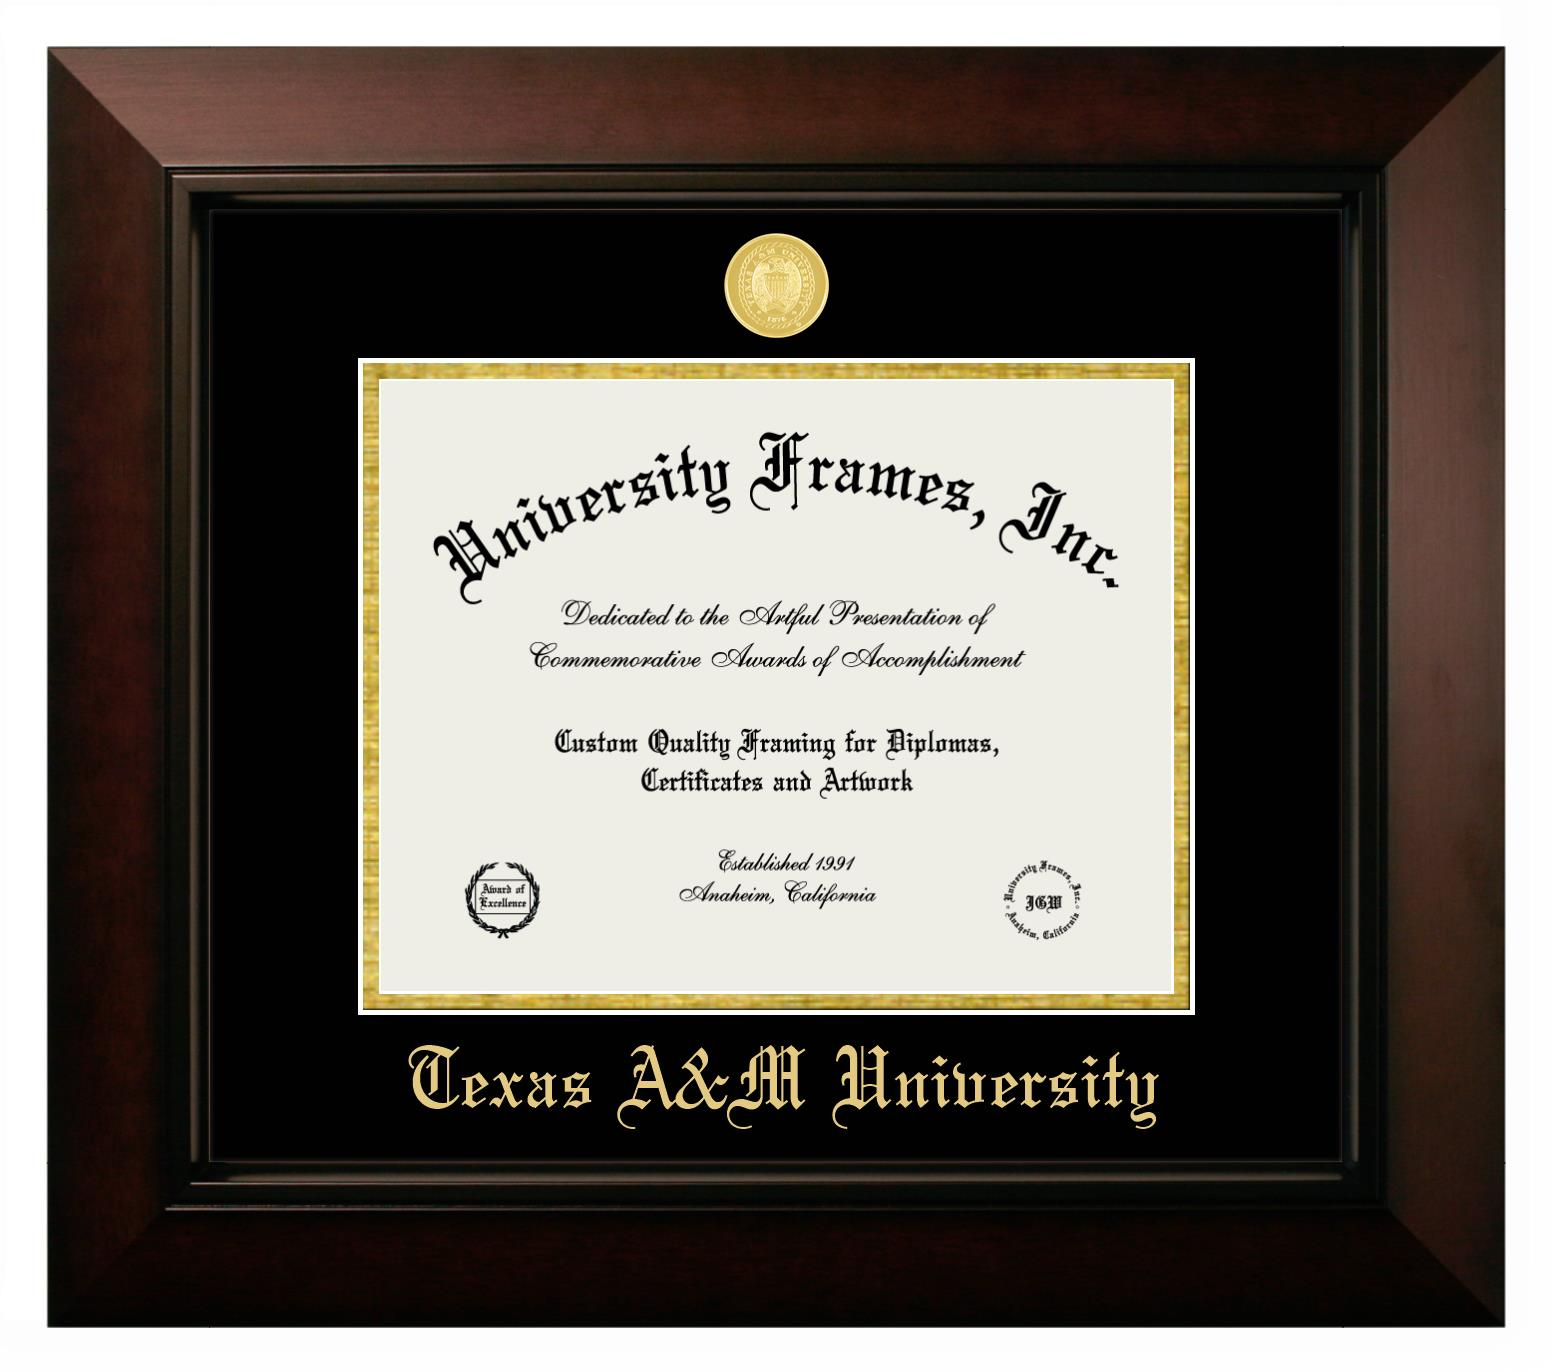 """Texas A&M University Texas A&M University Diploma Frame in Legacy Black Cherry with Black & Gold Mats for DOCUMENT: 8 1/2""""H X 11""""W"""